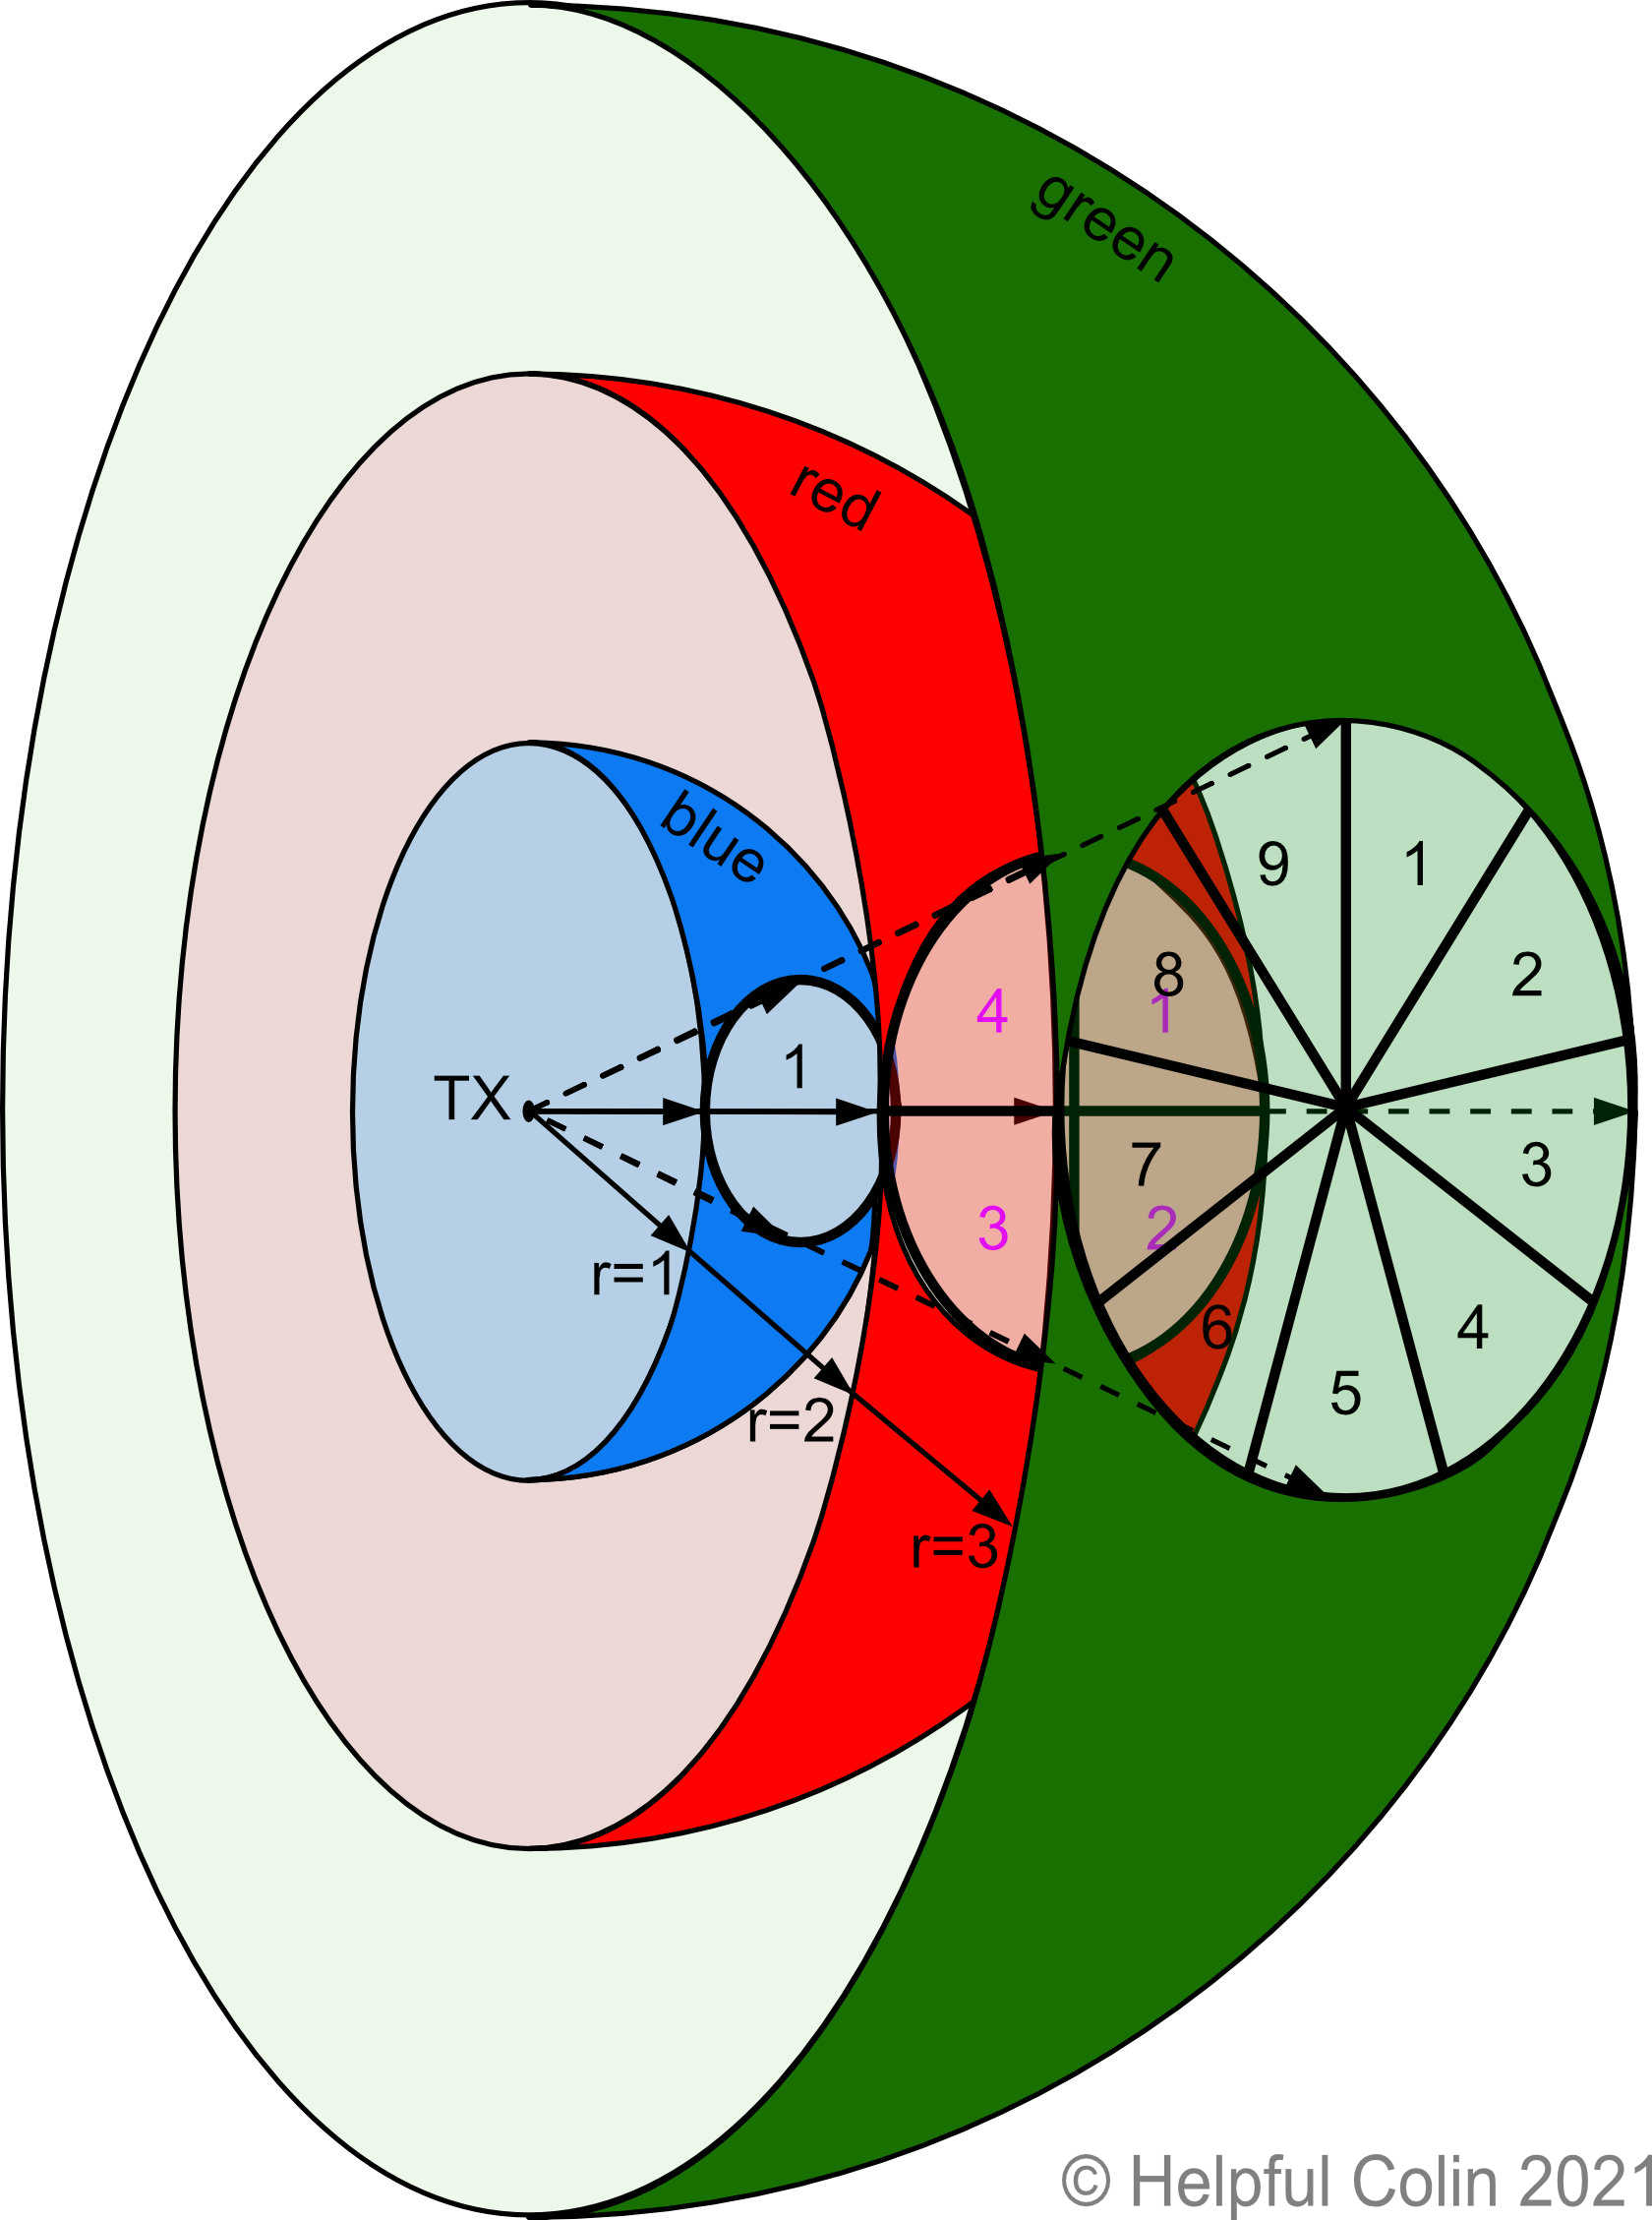 Distribution of Radio Wave Power over distance using a conical beam.